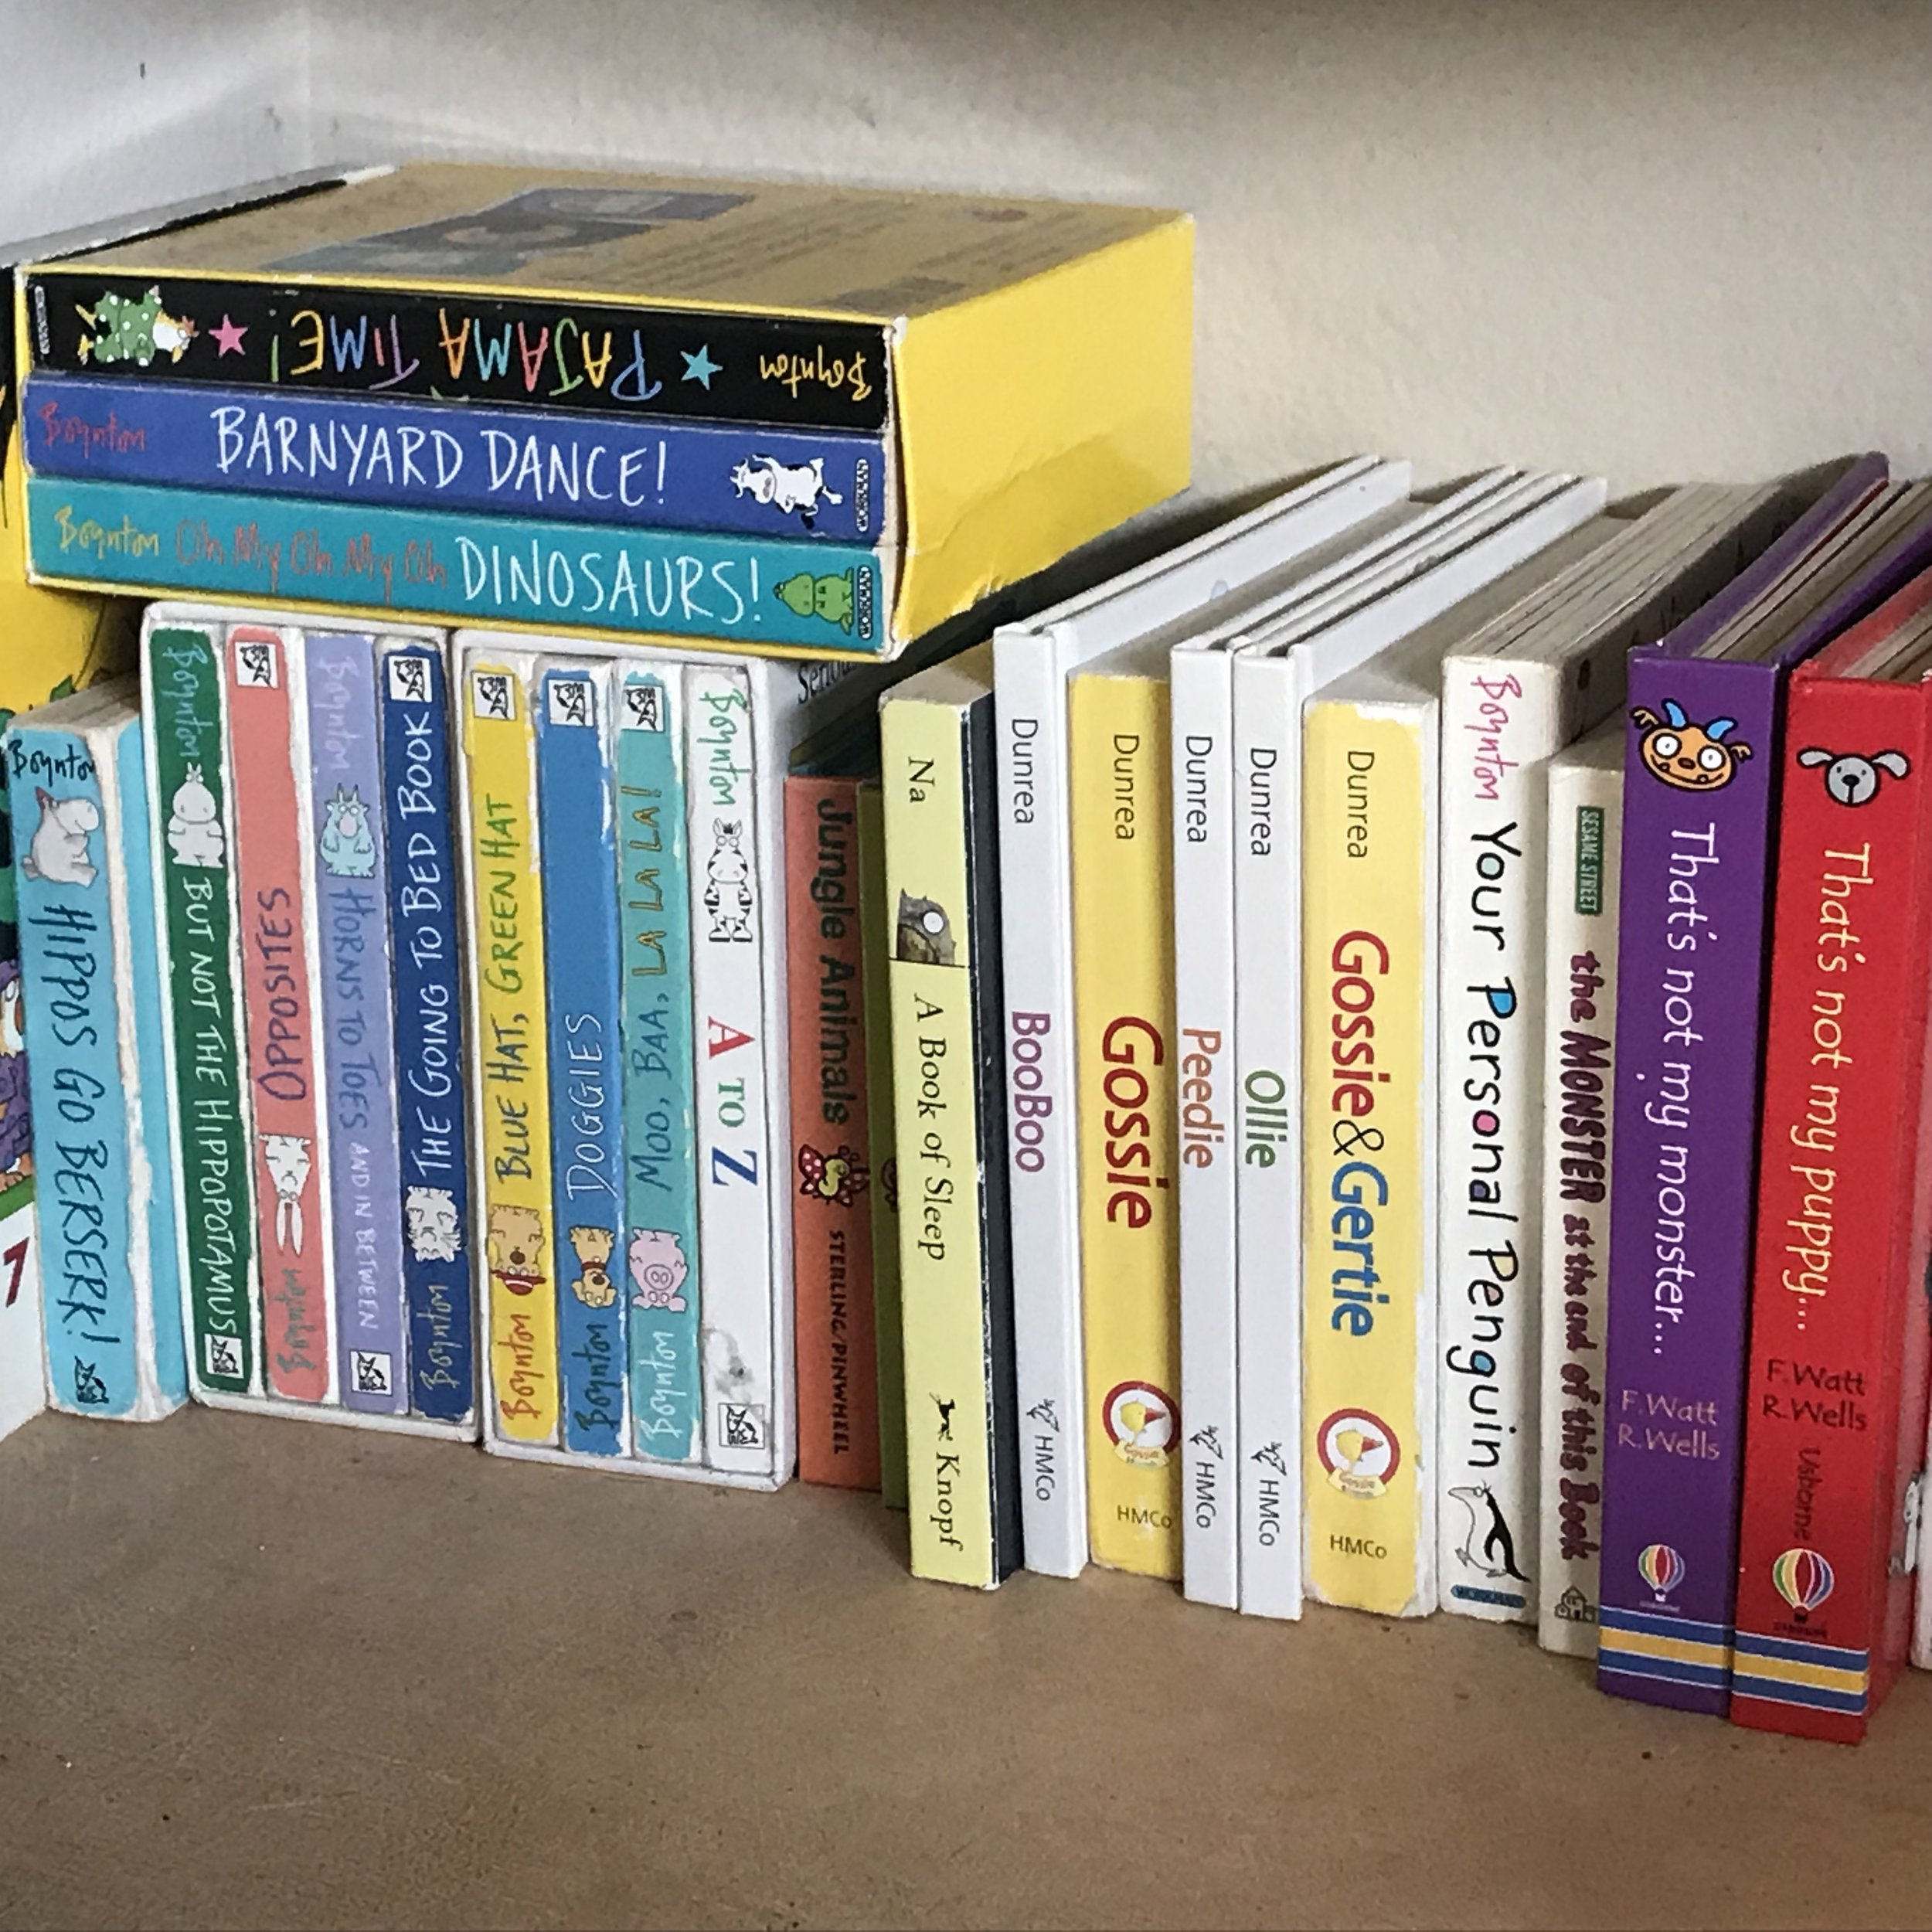 A collection of the Bookworm family's favorite board books.